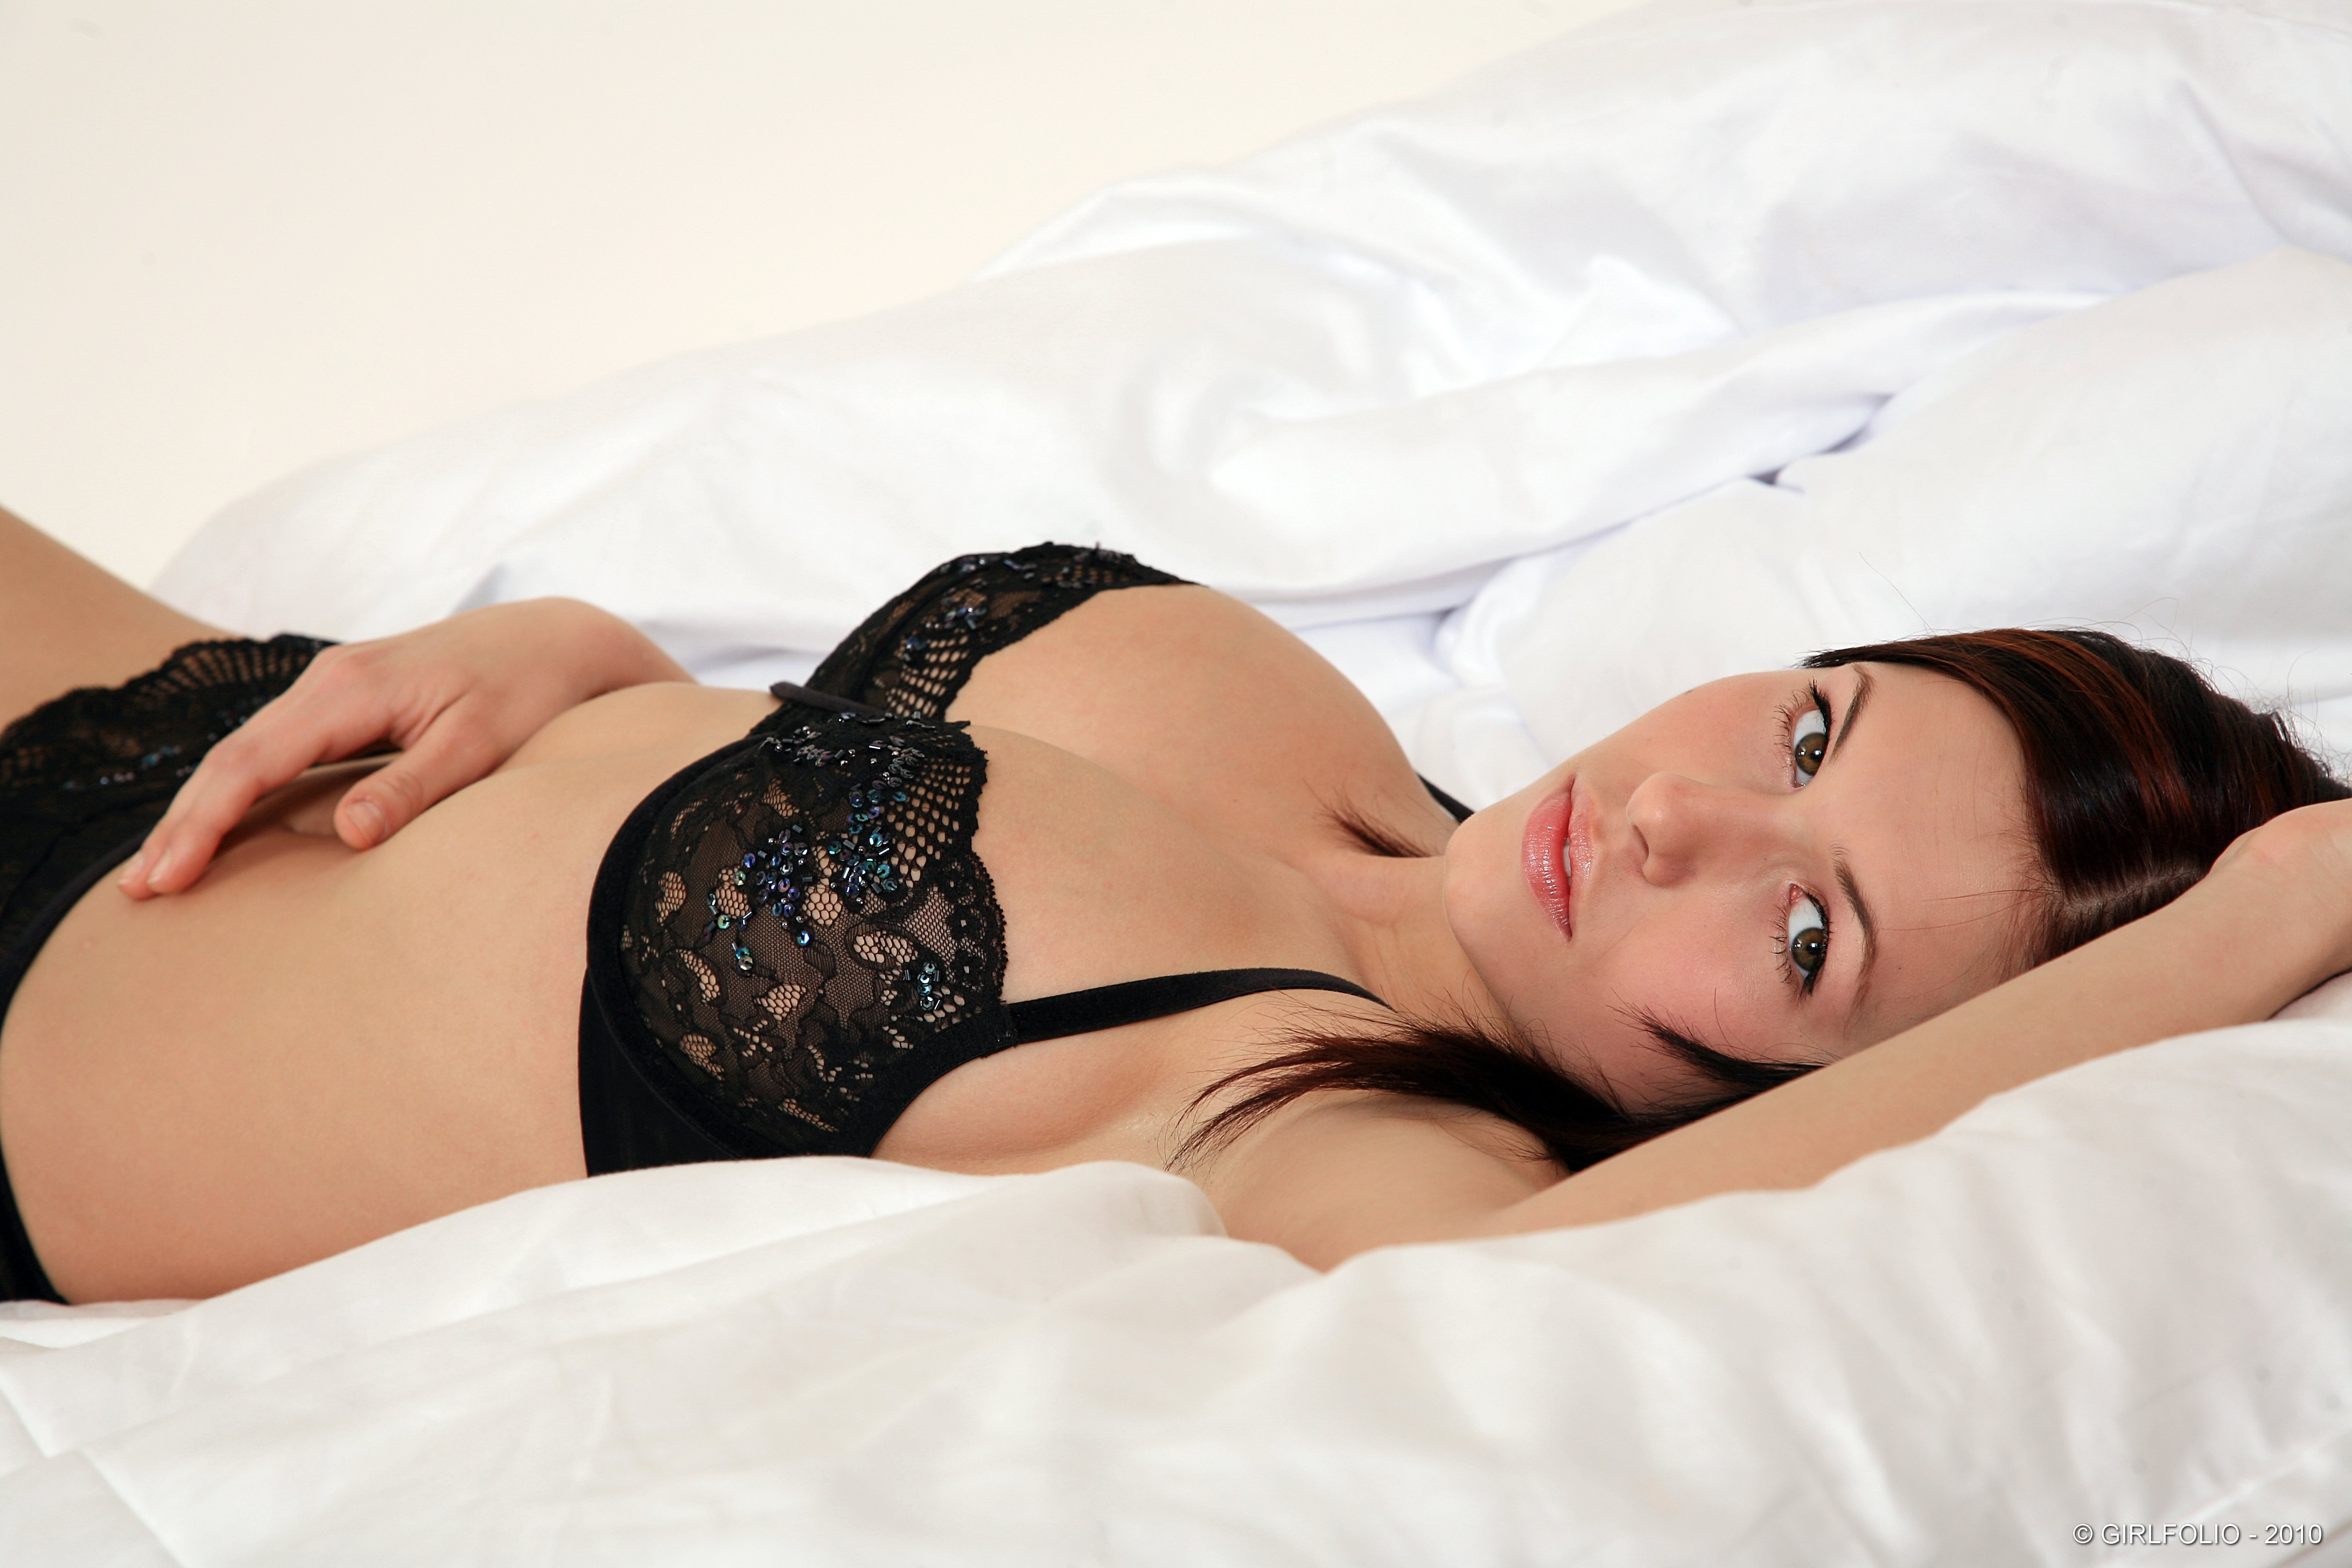 woman lingerie lying down Polish boobs HD Wallpaper